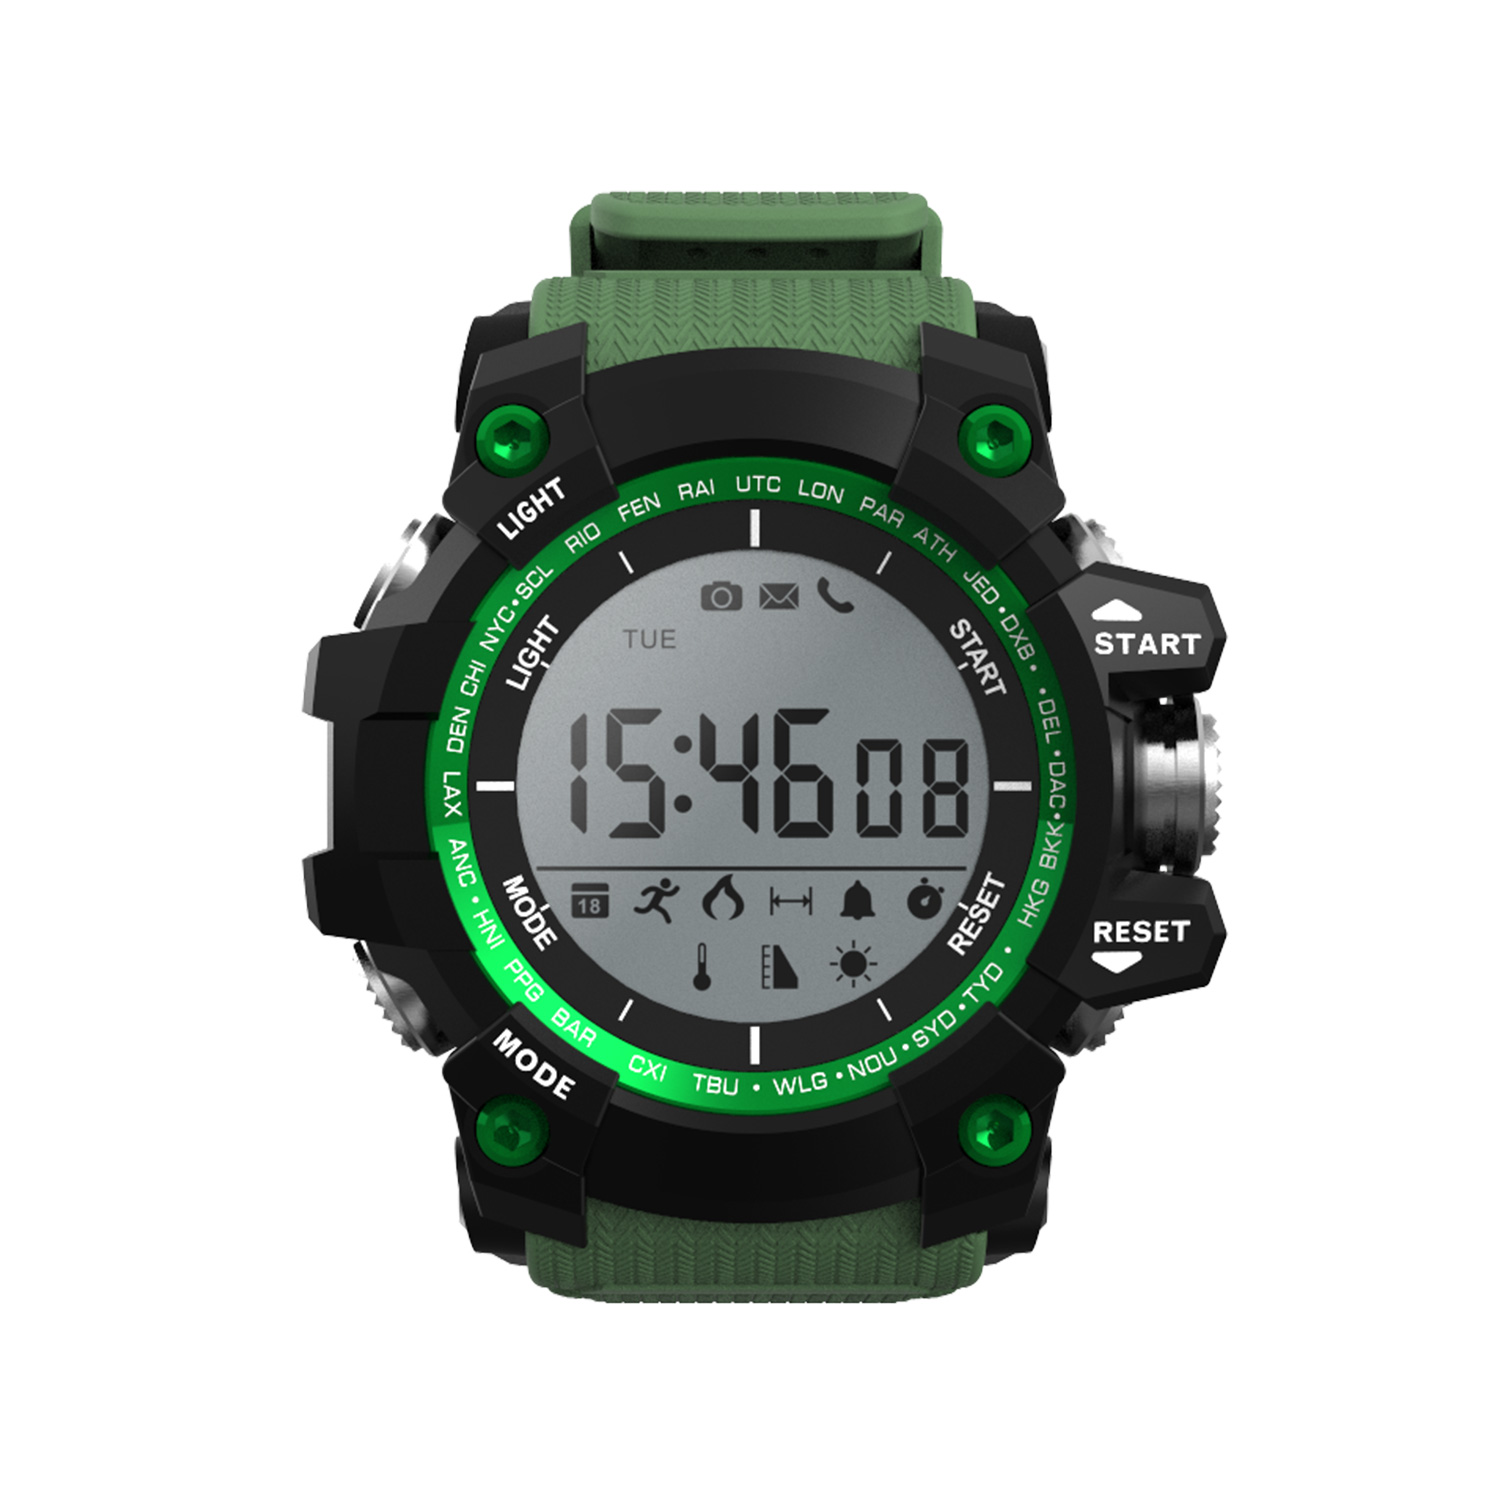 Bluetooth Sport Smart Watches DTNO 1 F2 with UV Thermometer Altitude For Android IOS iPhone support